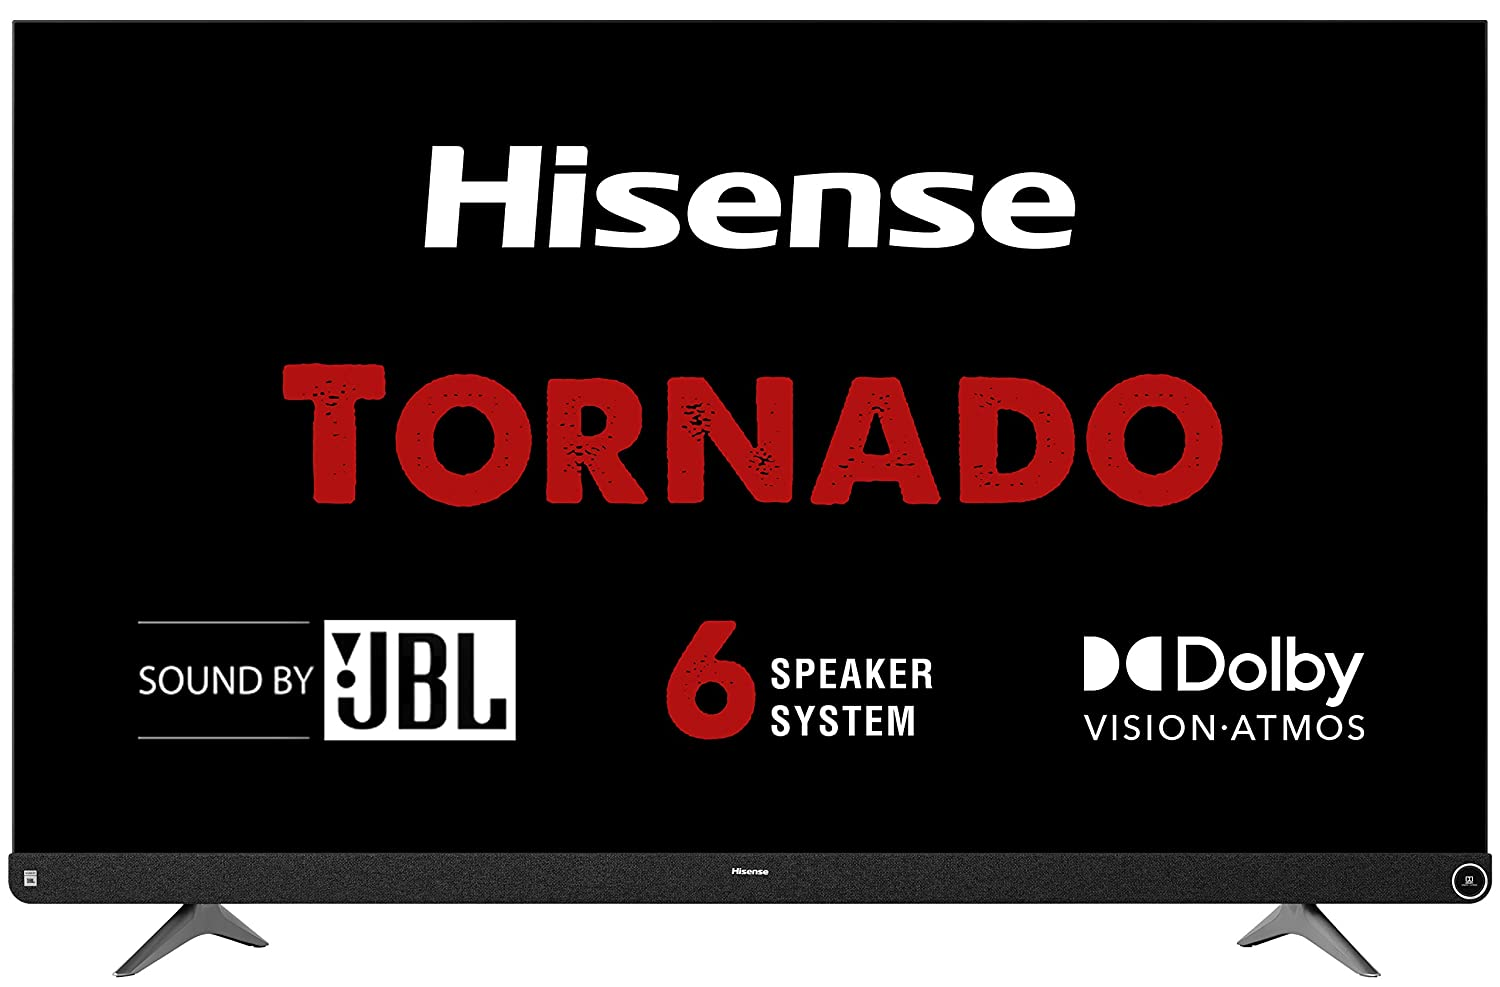 Hisense 139 cm (55 inches) 4K Ultra HD Smart Certified Android LED TV